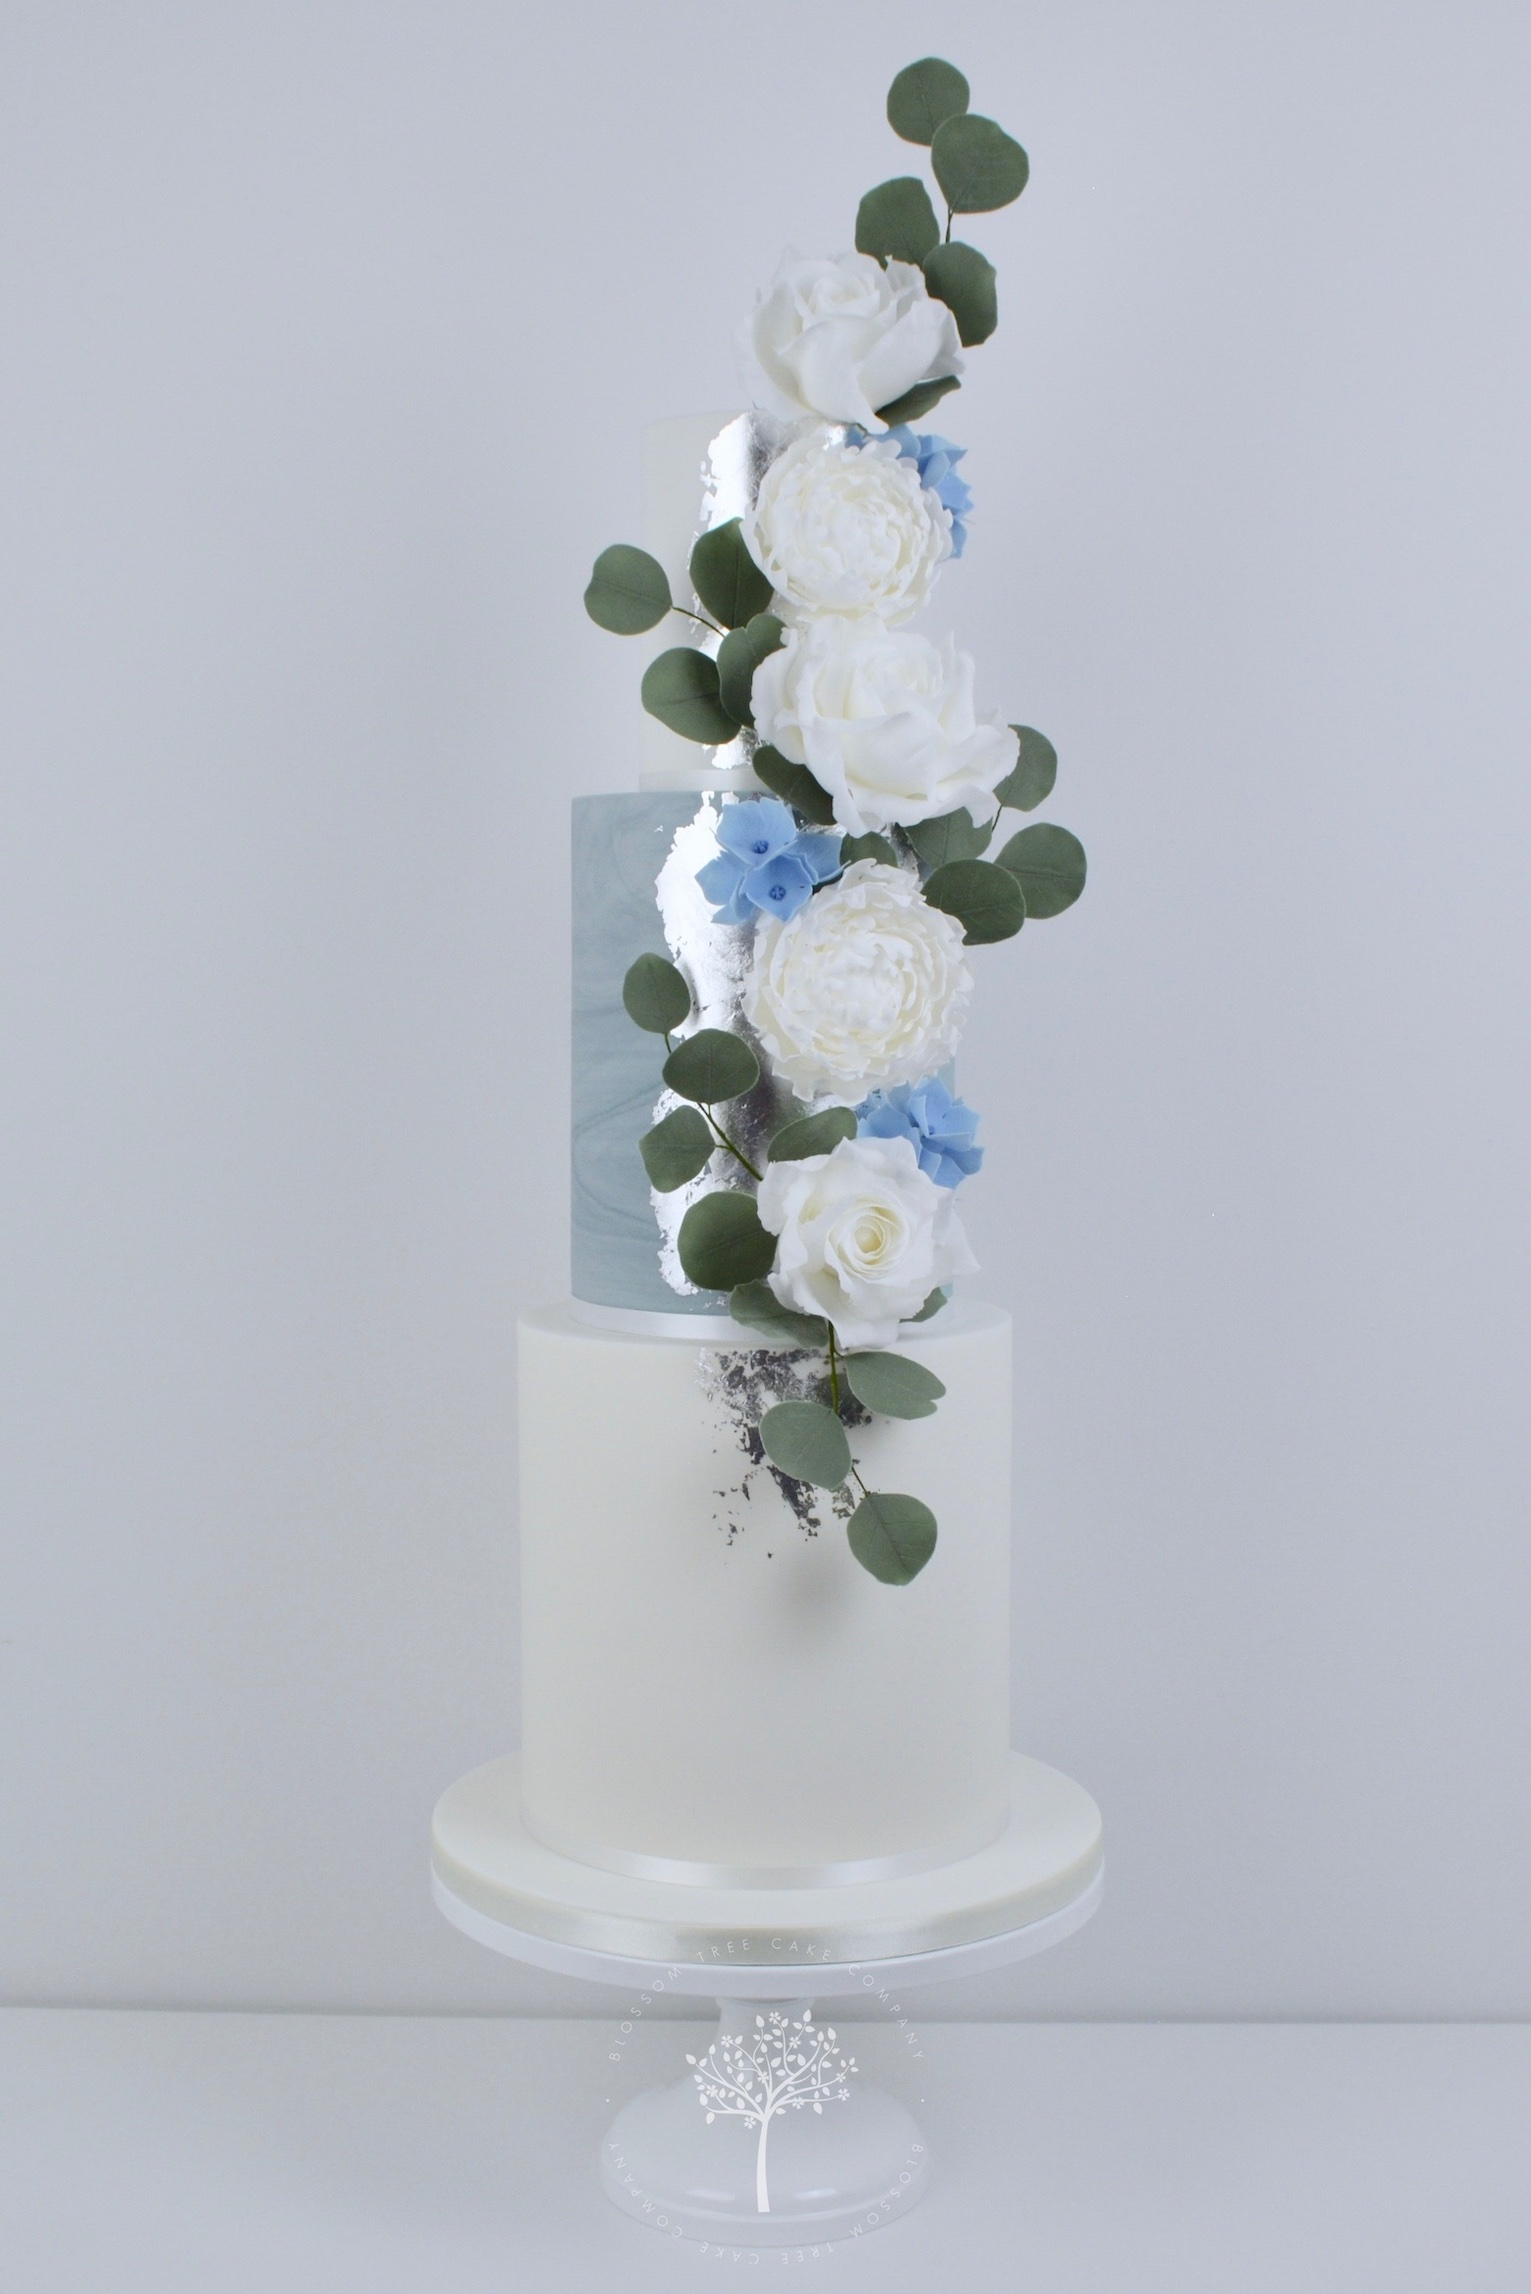 Peonies & Roses wedding cake by Blossom Tree Cake Company Harrogate North Yorkshire.jpg